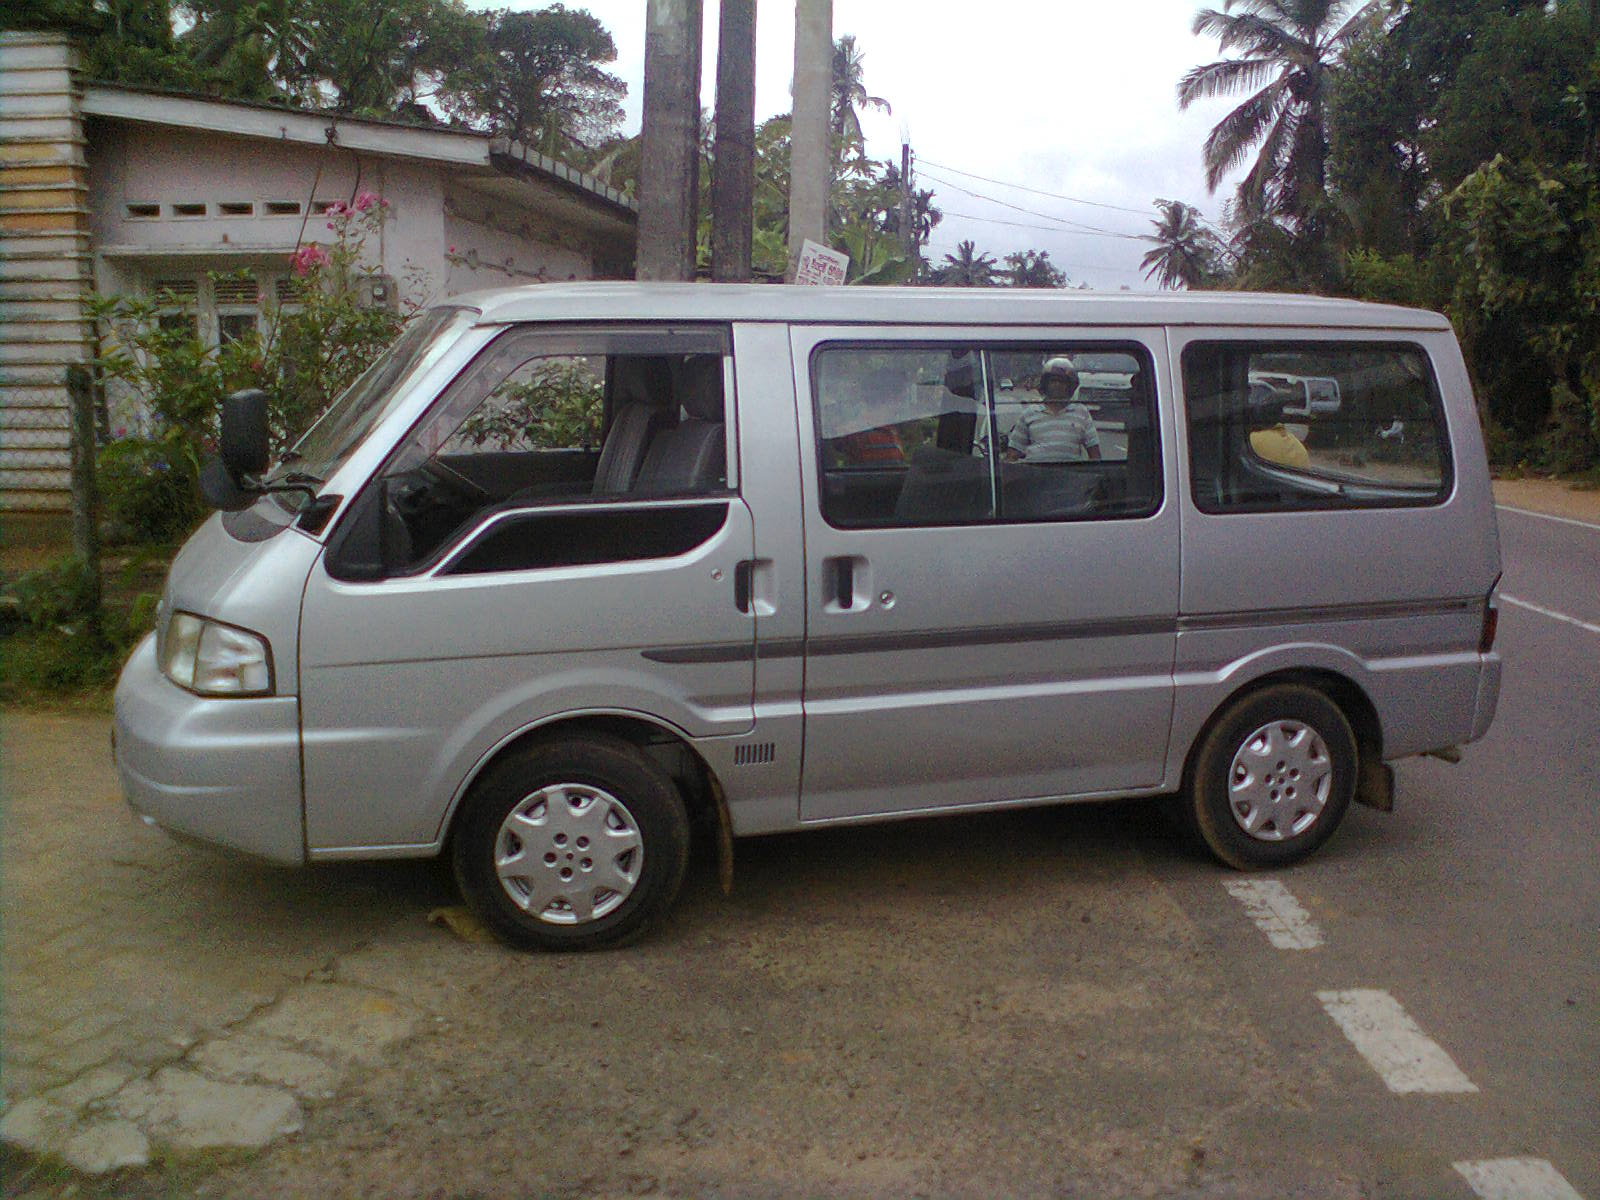 Used Vans For Sale Near Me >> New Buy Used Minivan | used cars